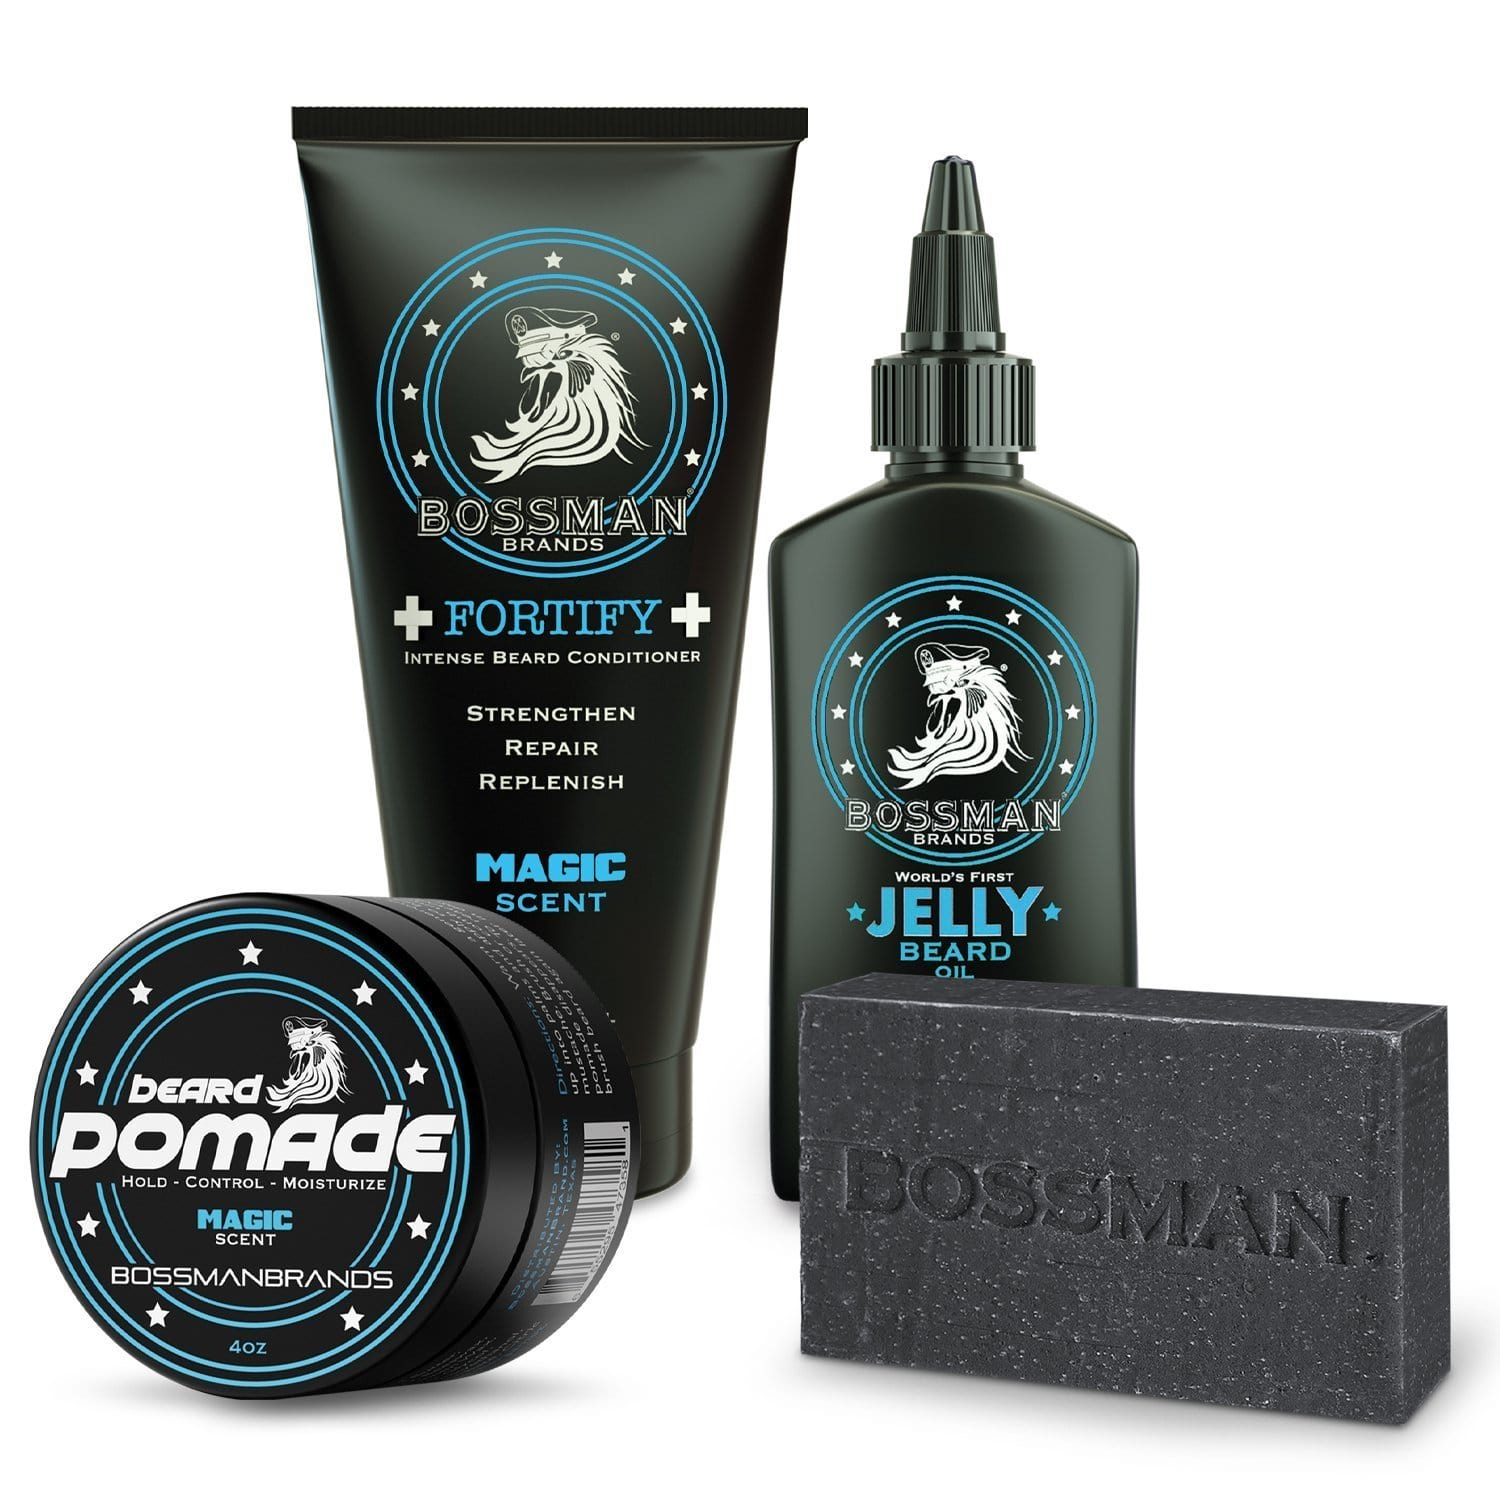 Bossman Professional Beard Kit - Magic Scent